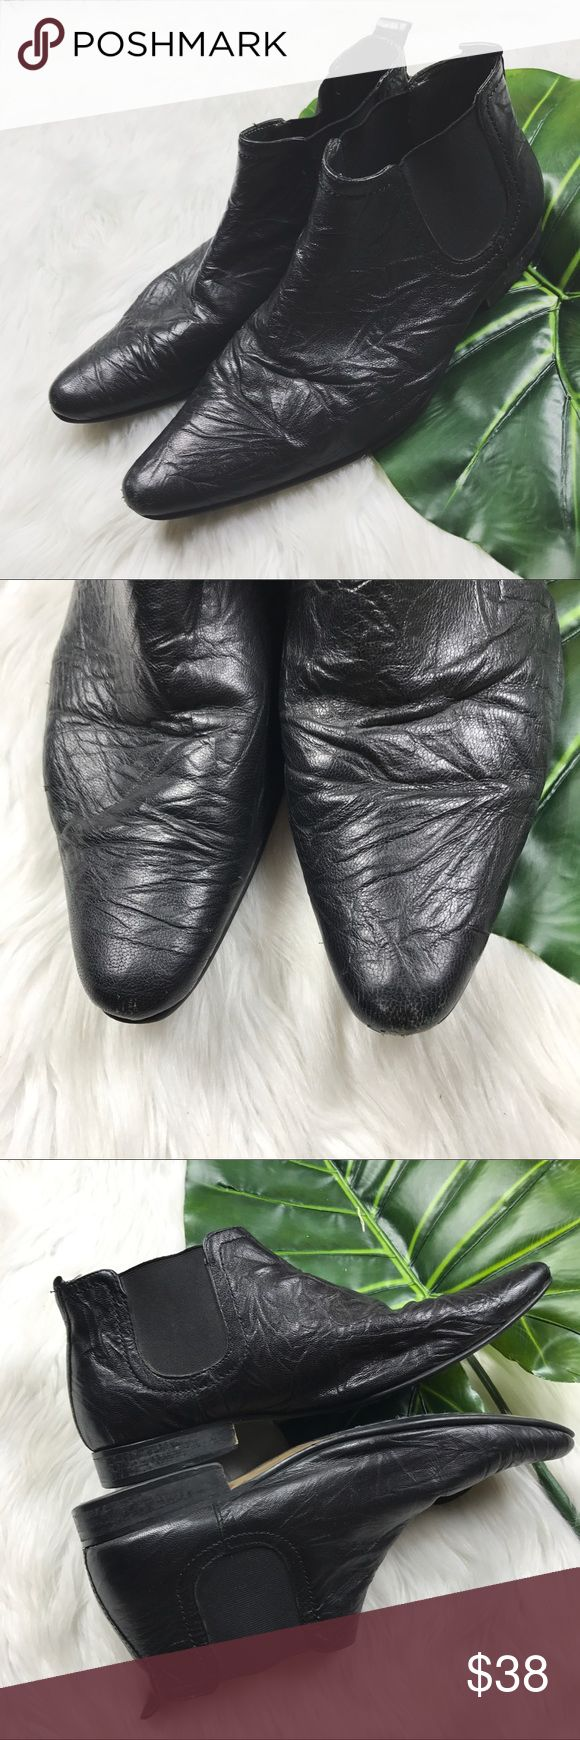 Topman Crinkled Leather Chelsea Boots In very good used condition // boots shoe typical signs of wear // one shoe has hearts drawn on the bottoms sole (refer to photo). Topman Shoes Boots